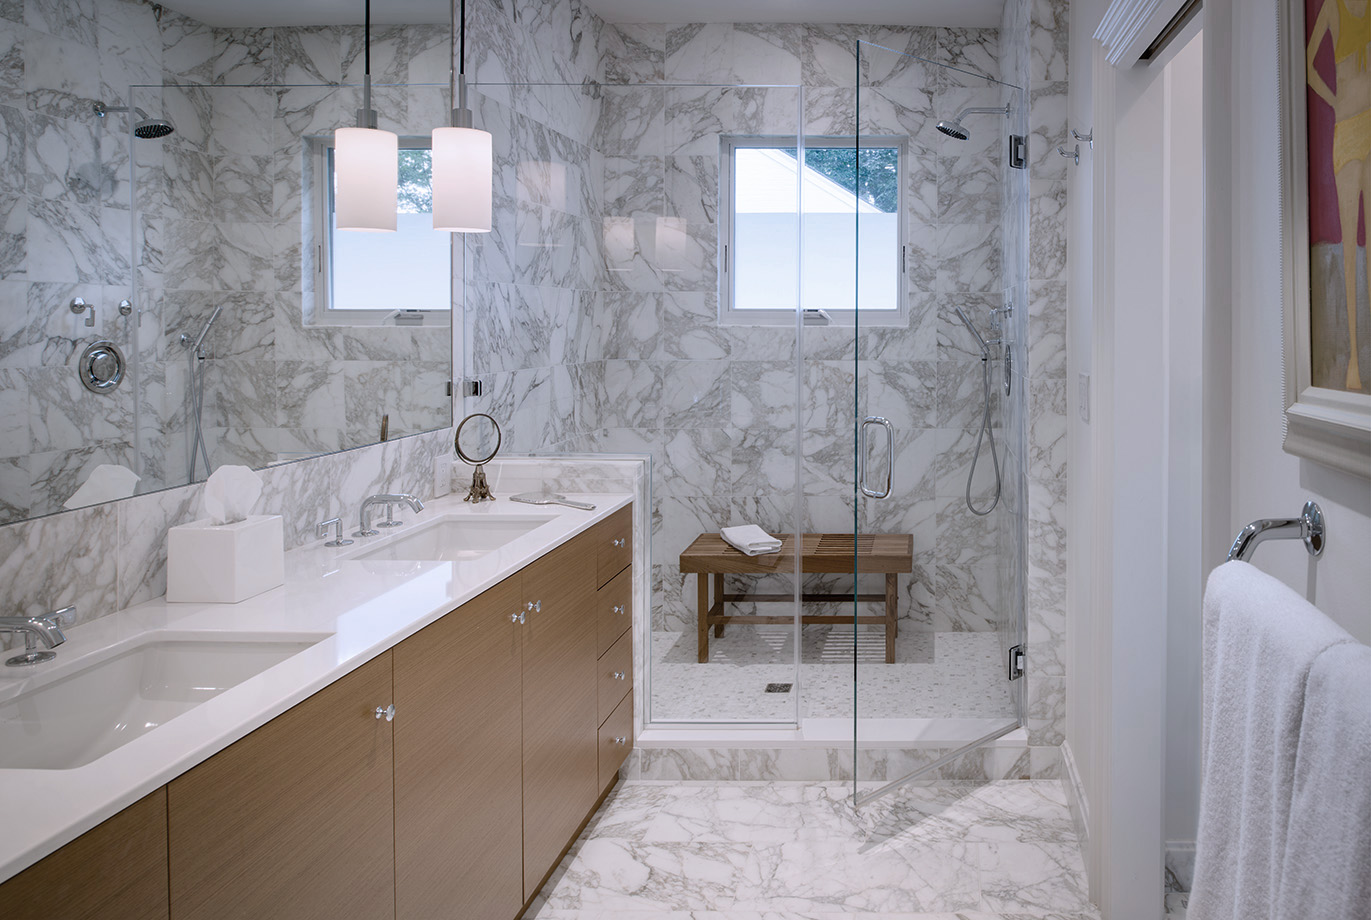 Marble tiled bathroom